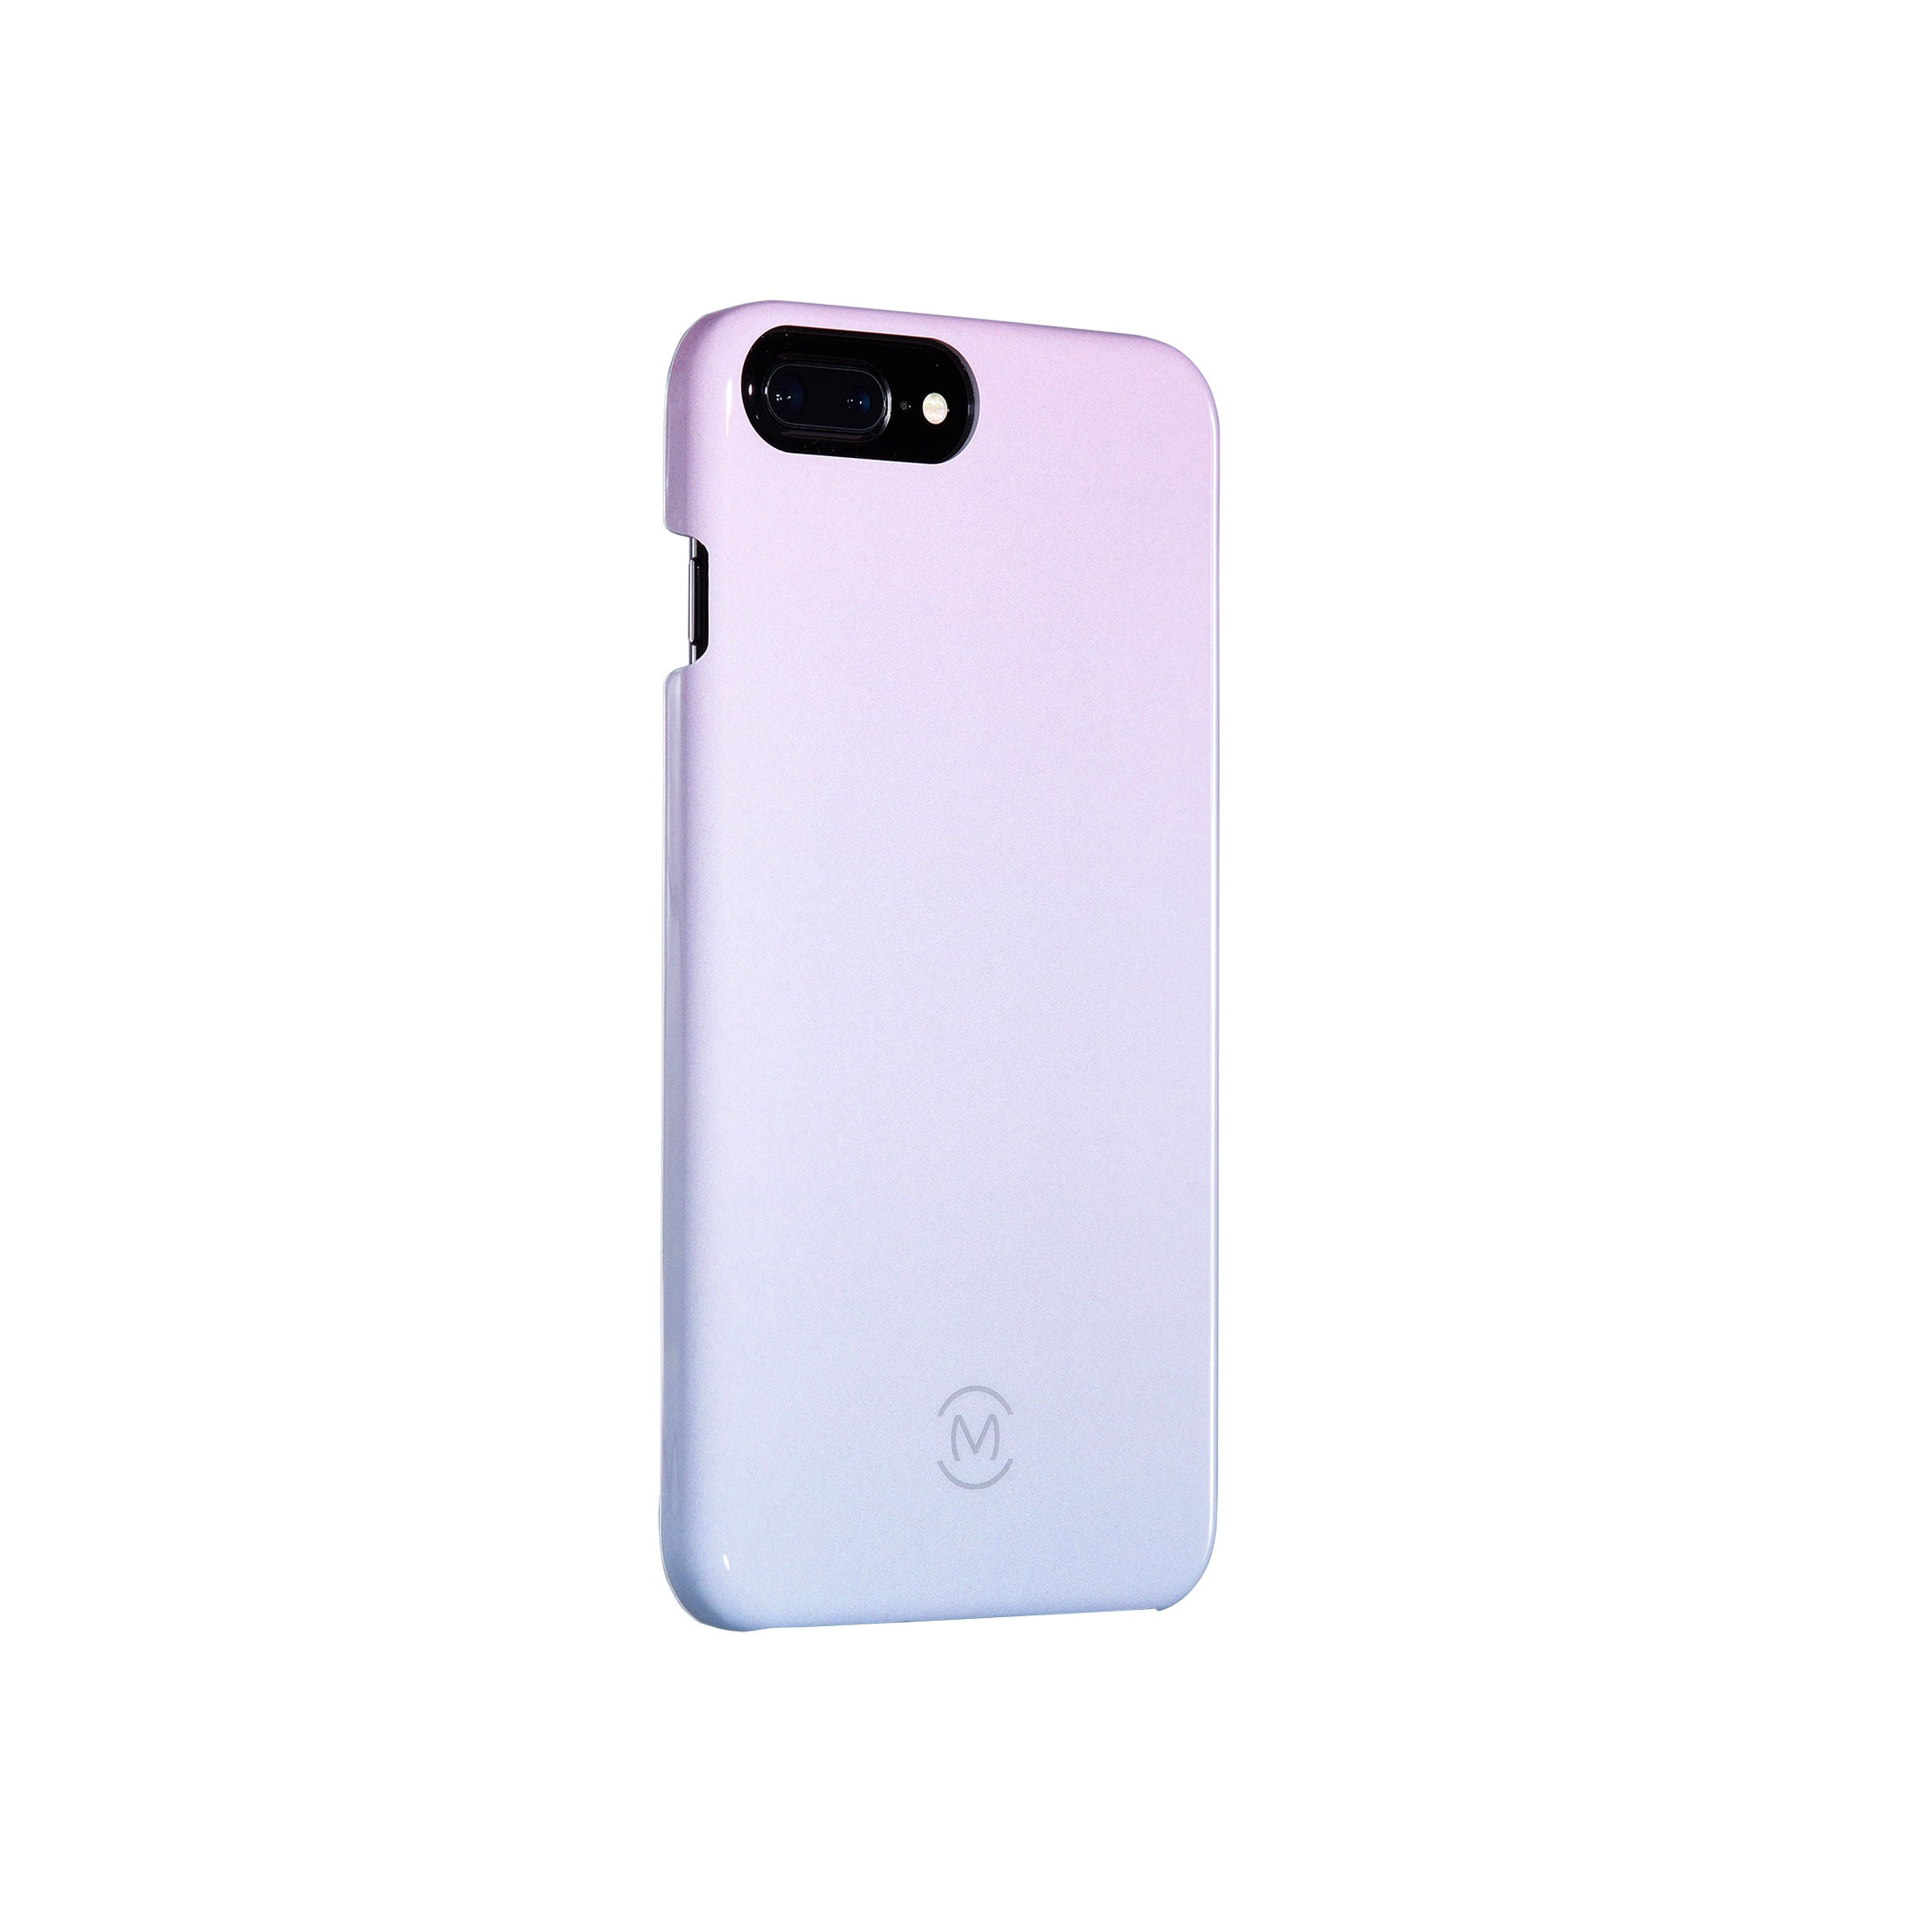 Pink-Blue Gradient Arctic Dusk Recyclable Phone Case by Movement for iPhone 8 Plus, iPhone 7 Plus, iPhone 6s Plus, and iPhone 6 Plus (Left)